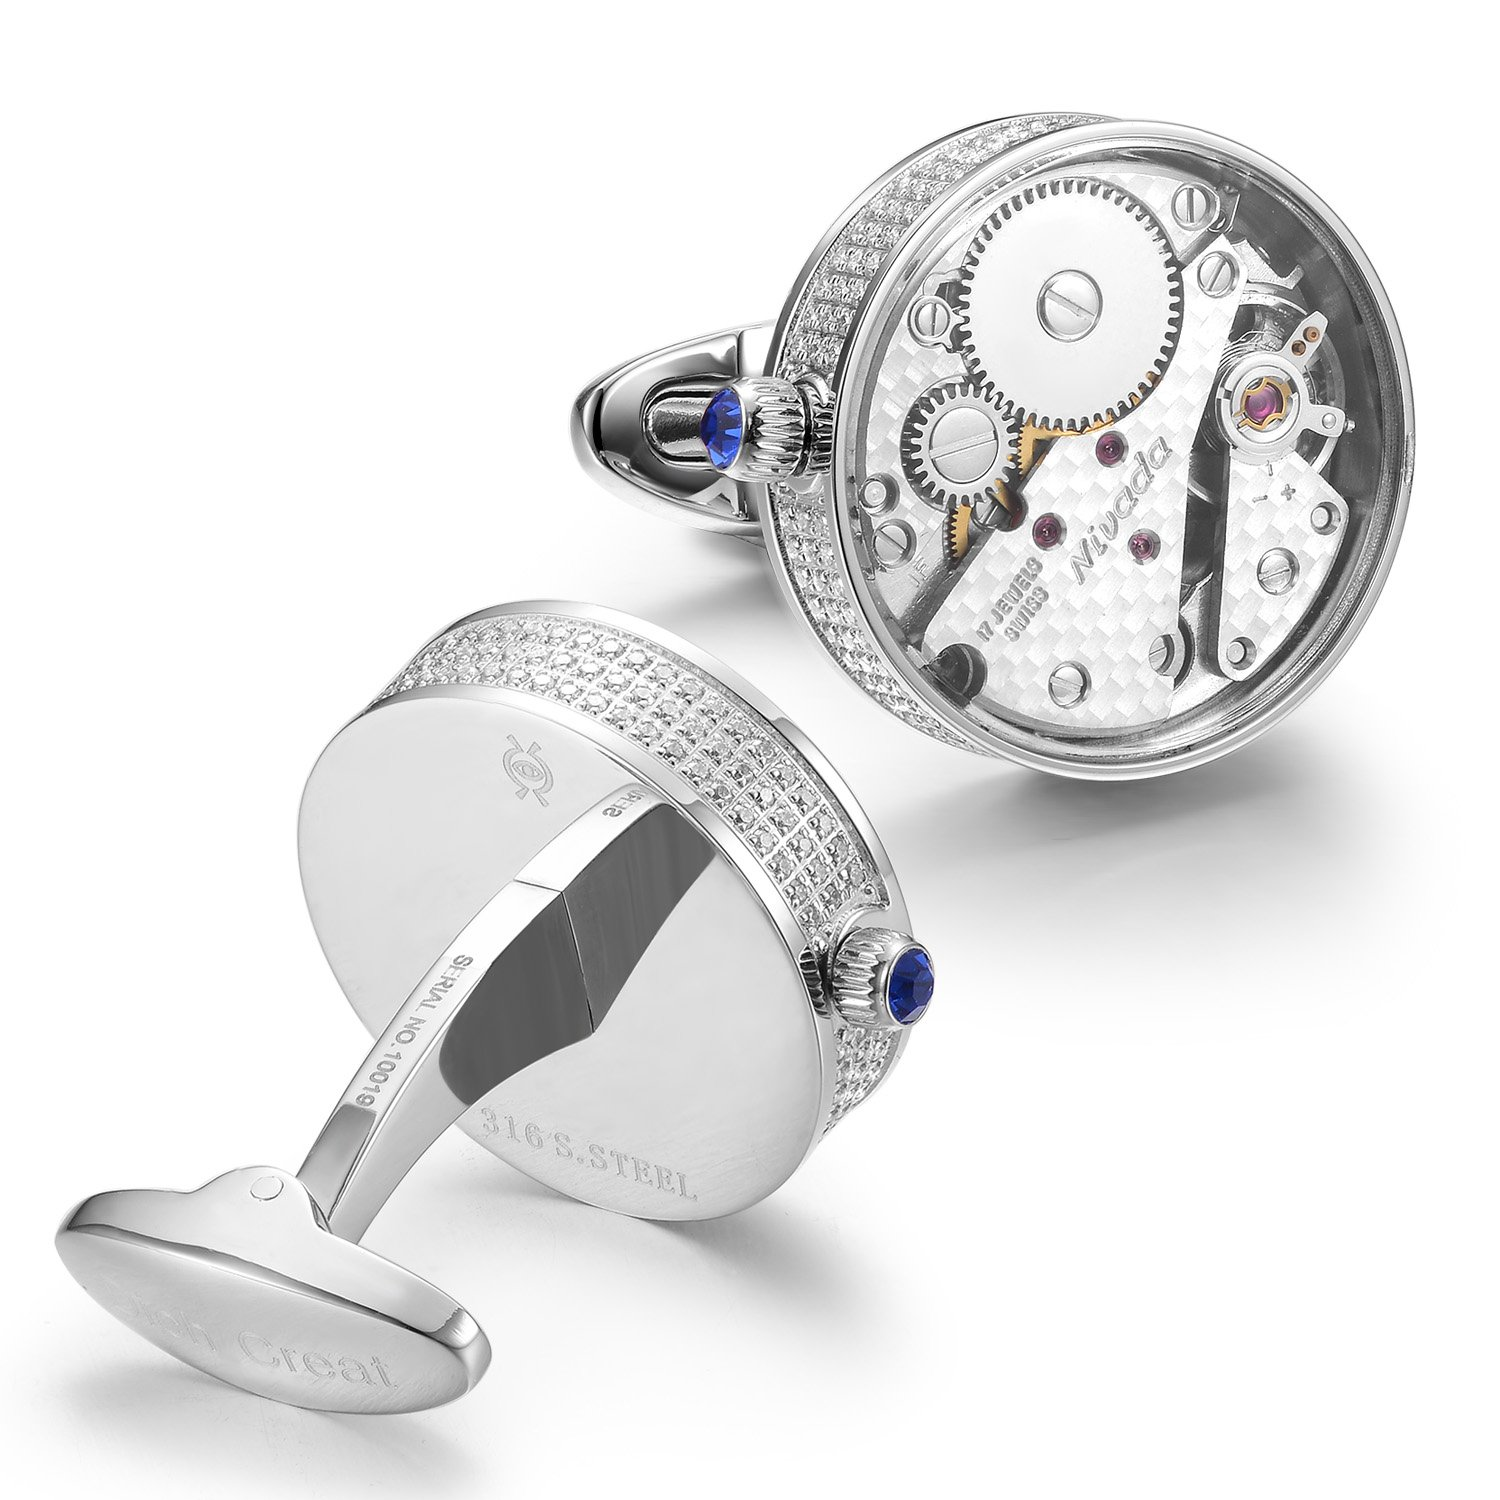 Dich Creat Stainless Steel Rhodium Plated Inlay Jewels Swiss Luxury Movement Cufflinks Covered with Glass by Dich Creat